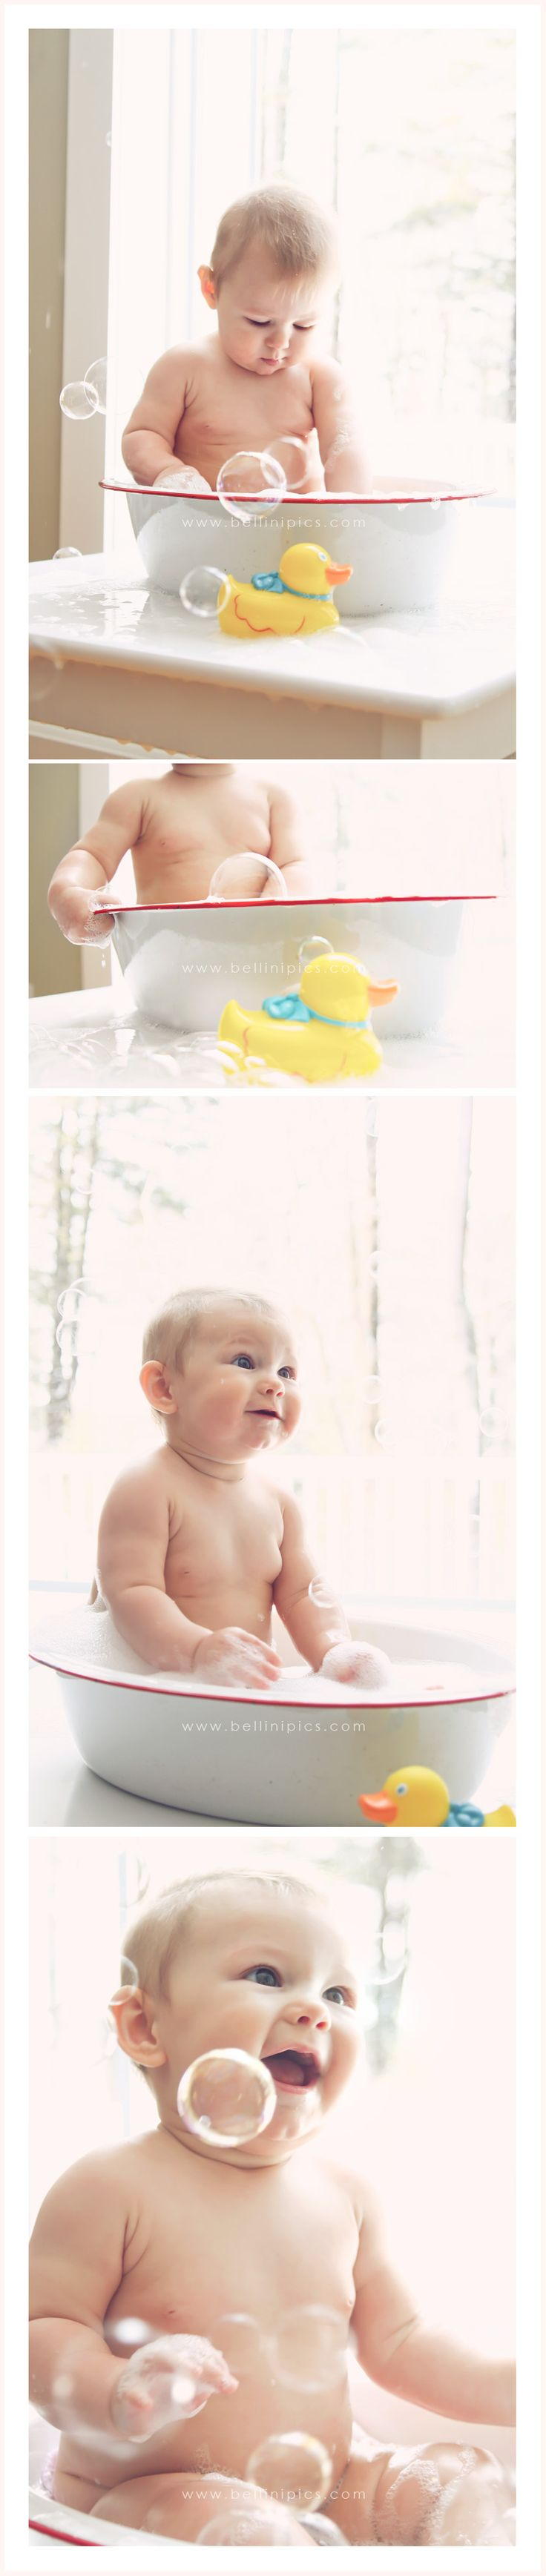 best 20 baby bath tubs ideas on pinterest baby products baby baby in a bath tub in the window with bubbles my mom has this same